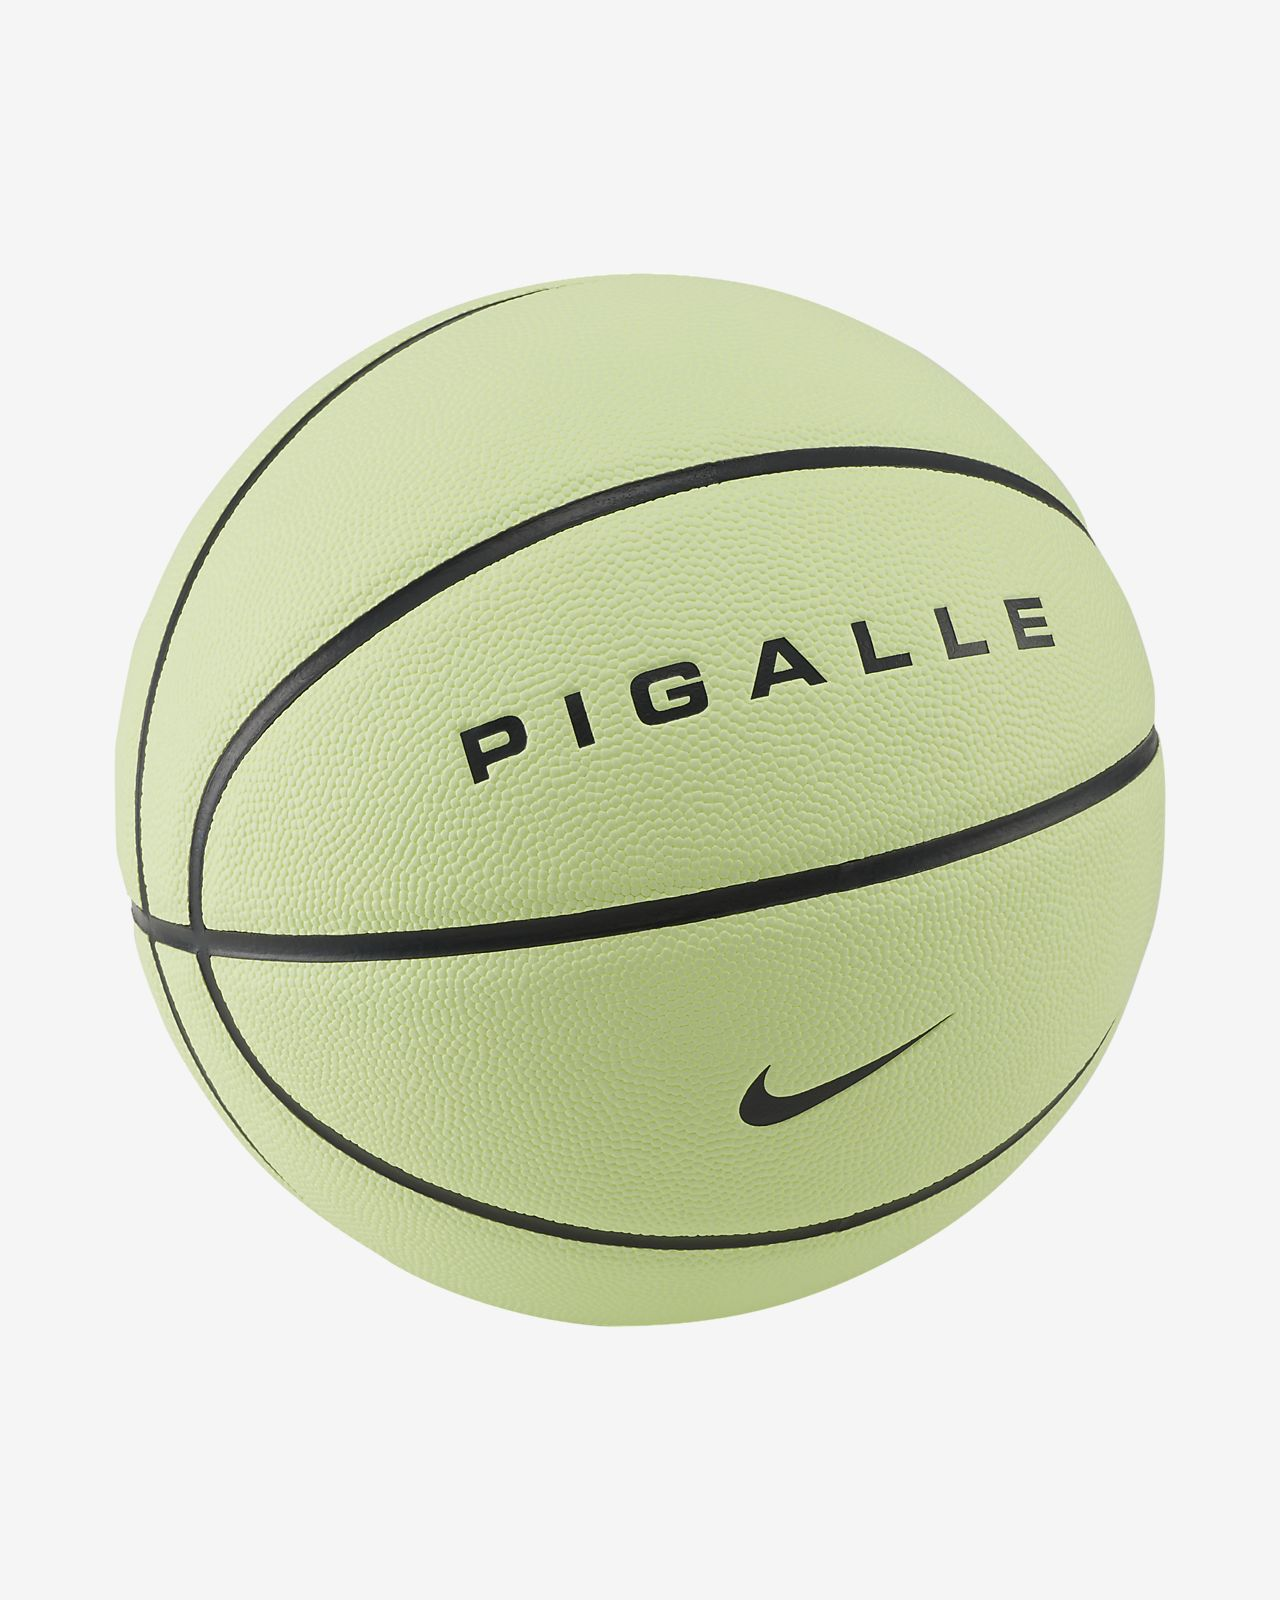 Nike x Pigalle Basketball (Size 7)